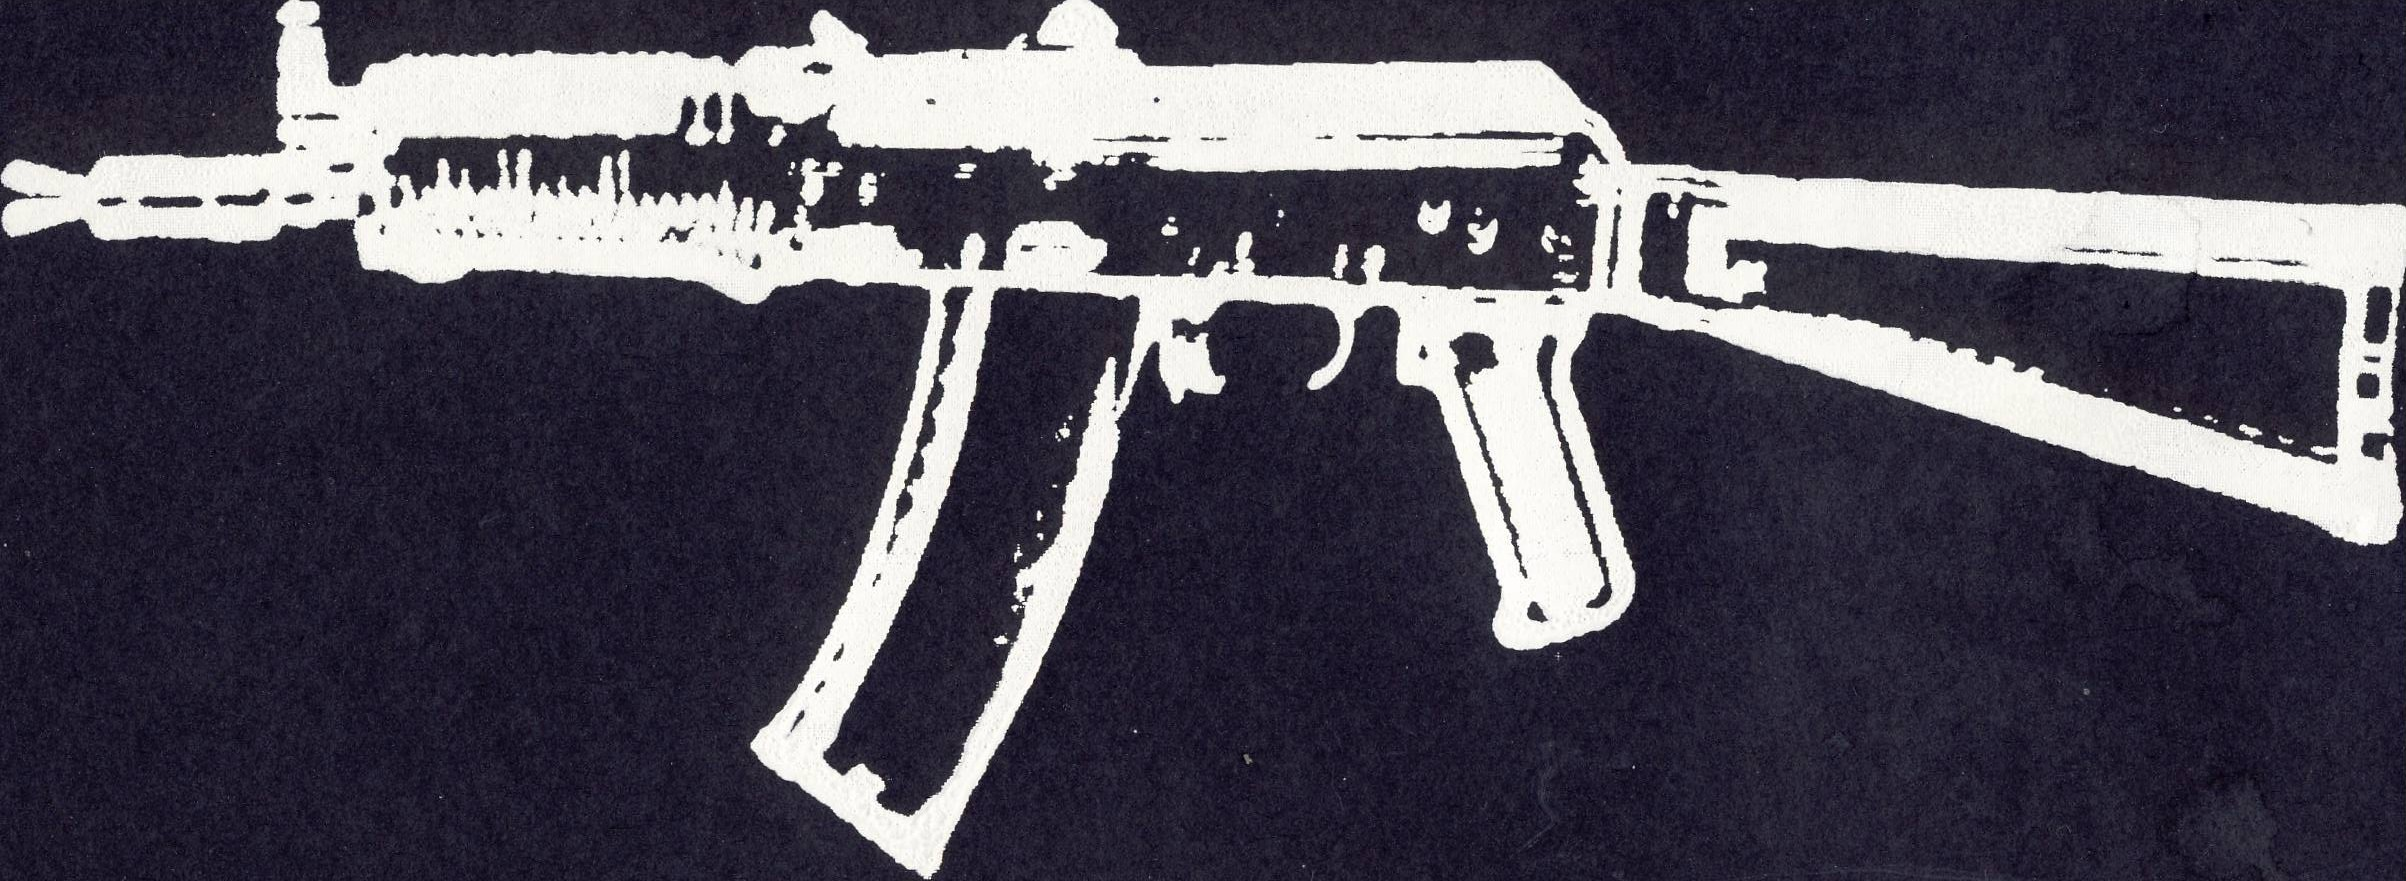 screenprint AK74-SU (1)